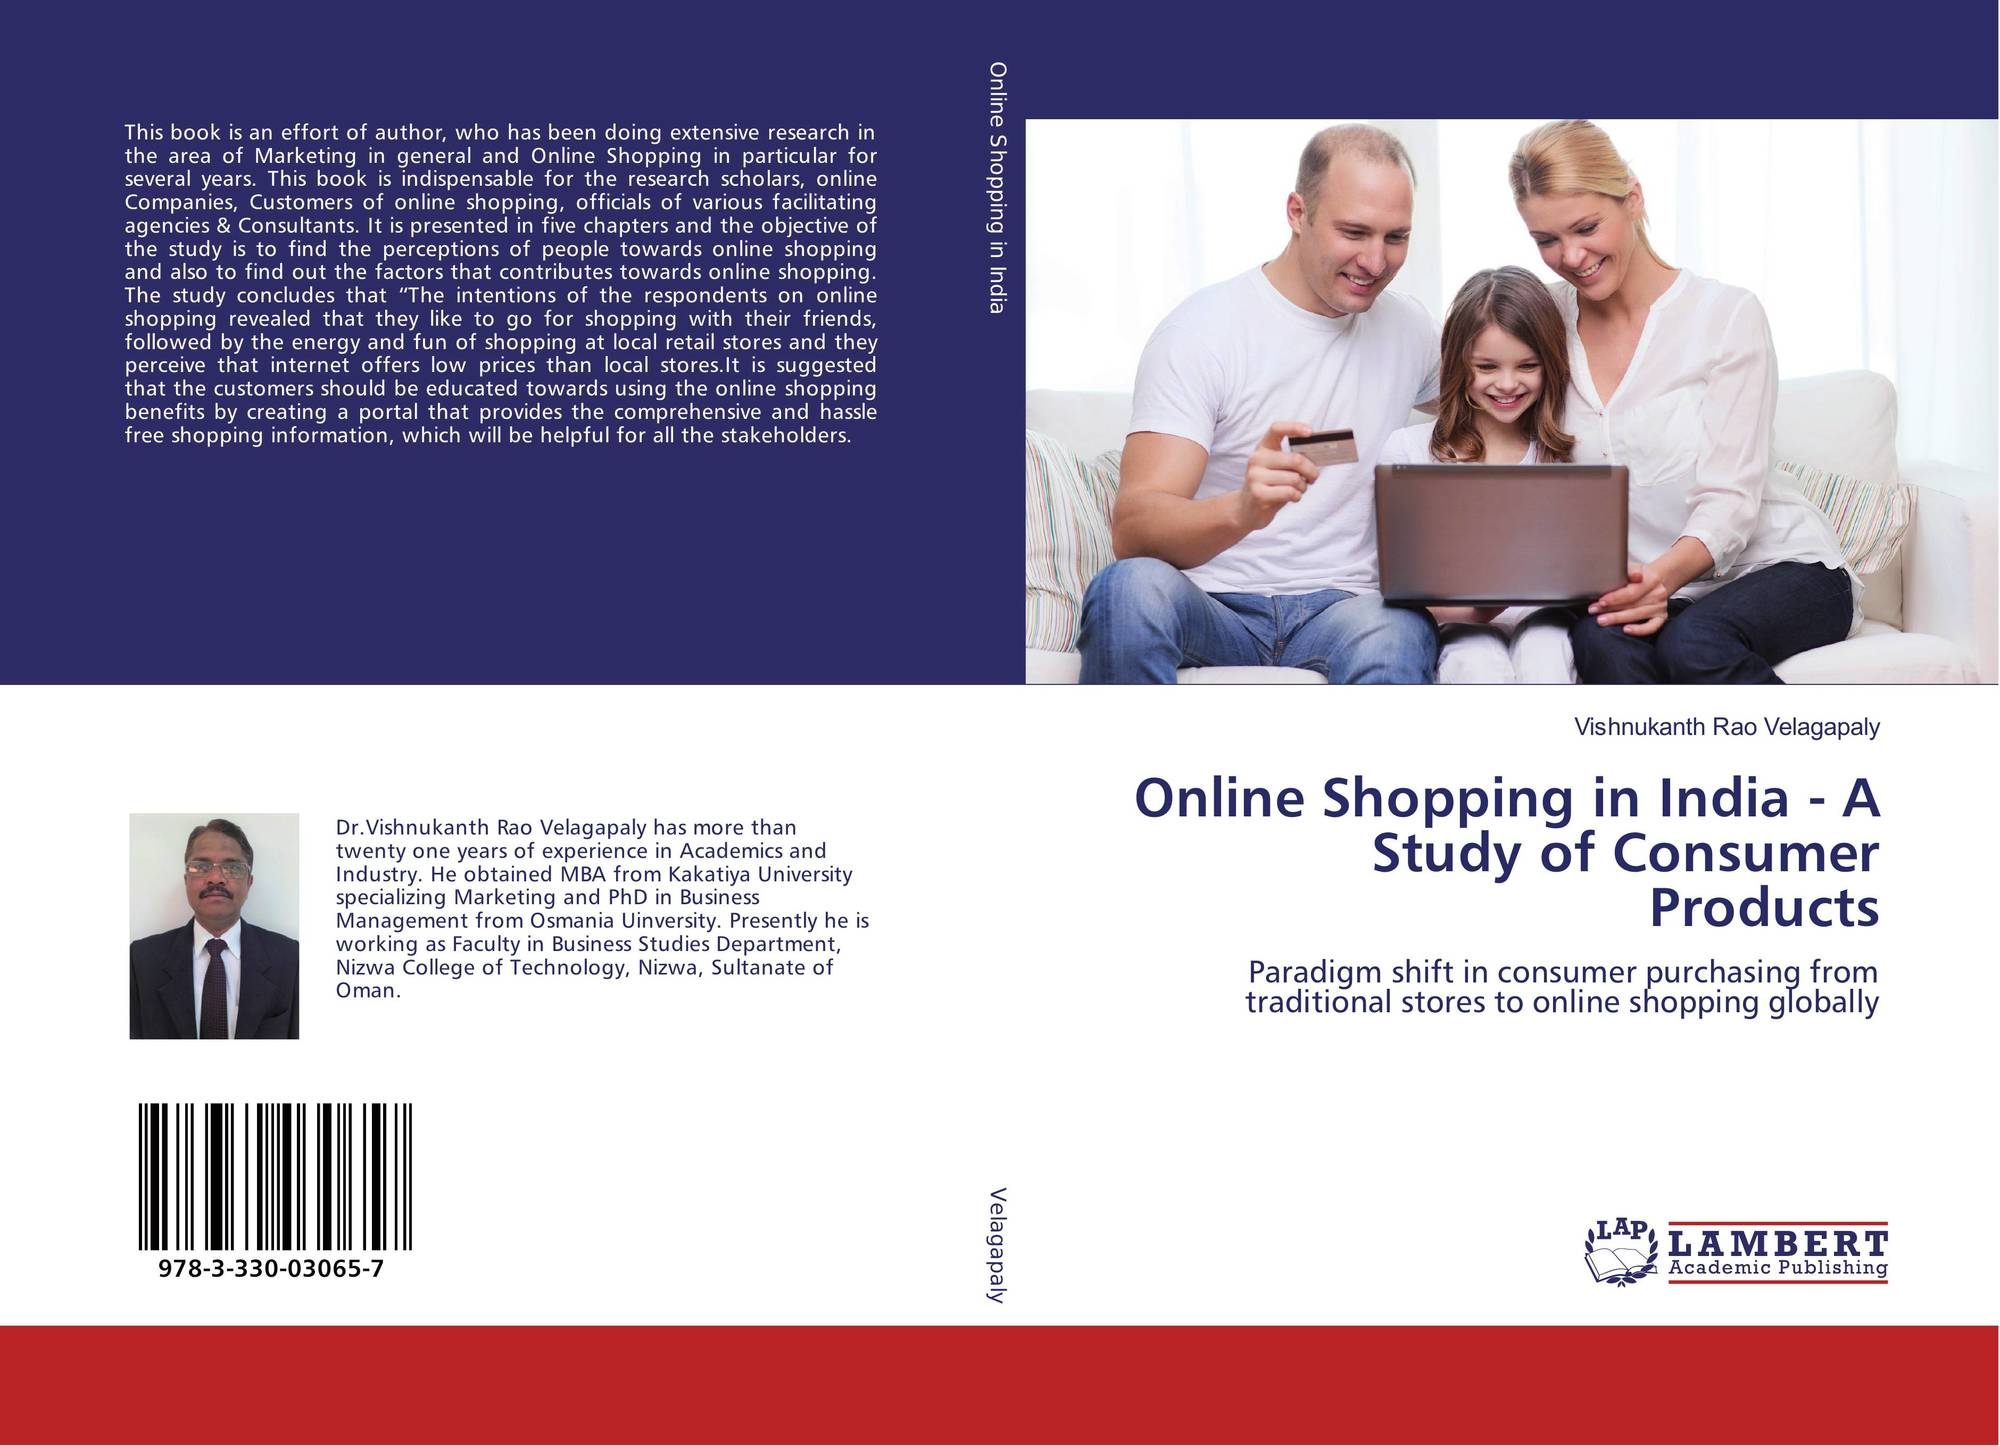 an analysis of online consumer behaviour Online consumer behavior has become an emerging research area with an increasing number of publications per year the research articles appear in a variety of journals and.